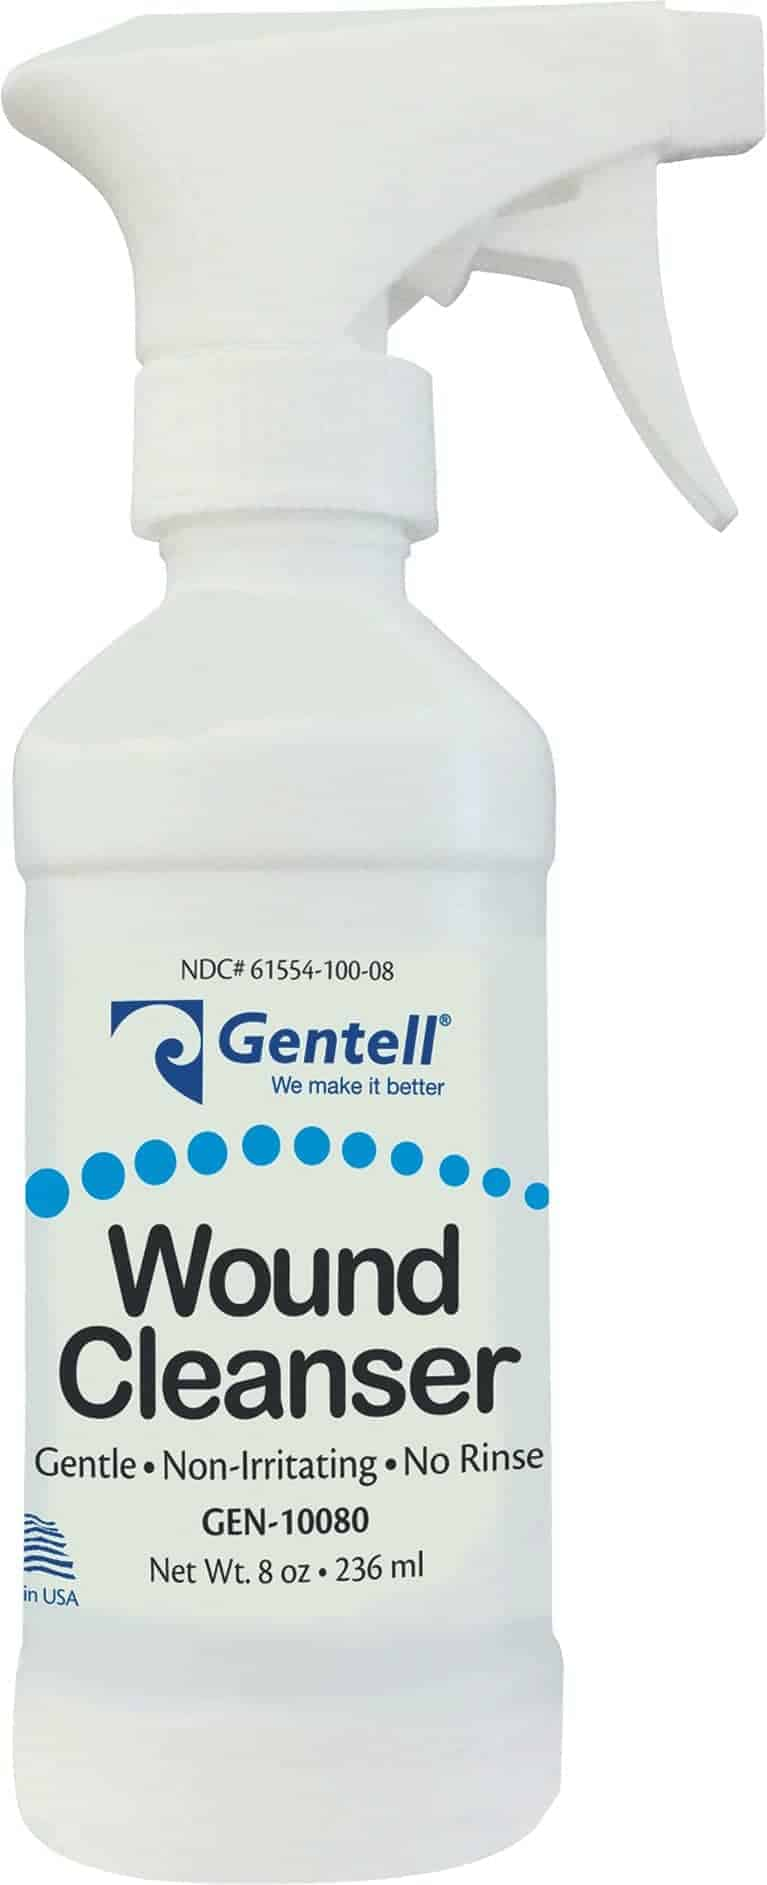 Gentell Wound Cleanser 8 oz. Spray Bottle